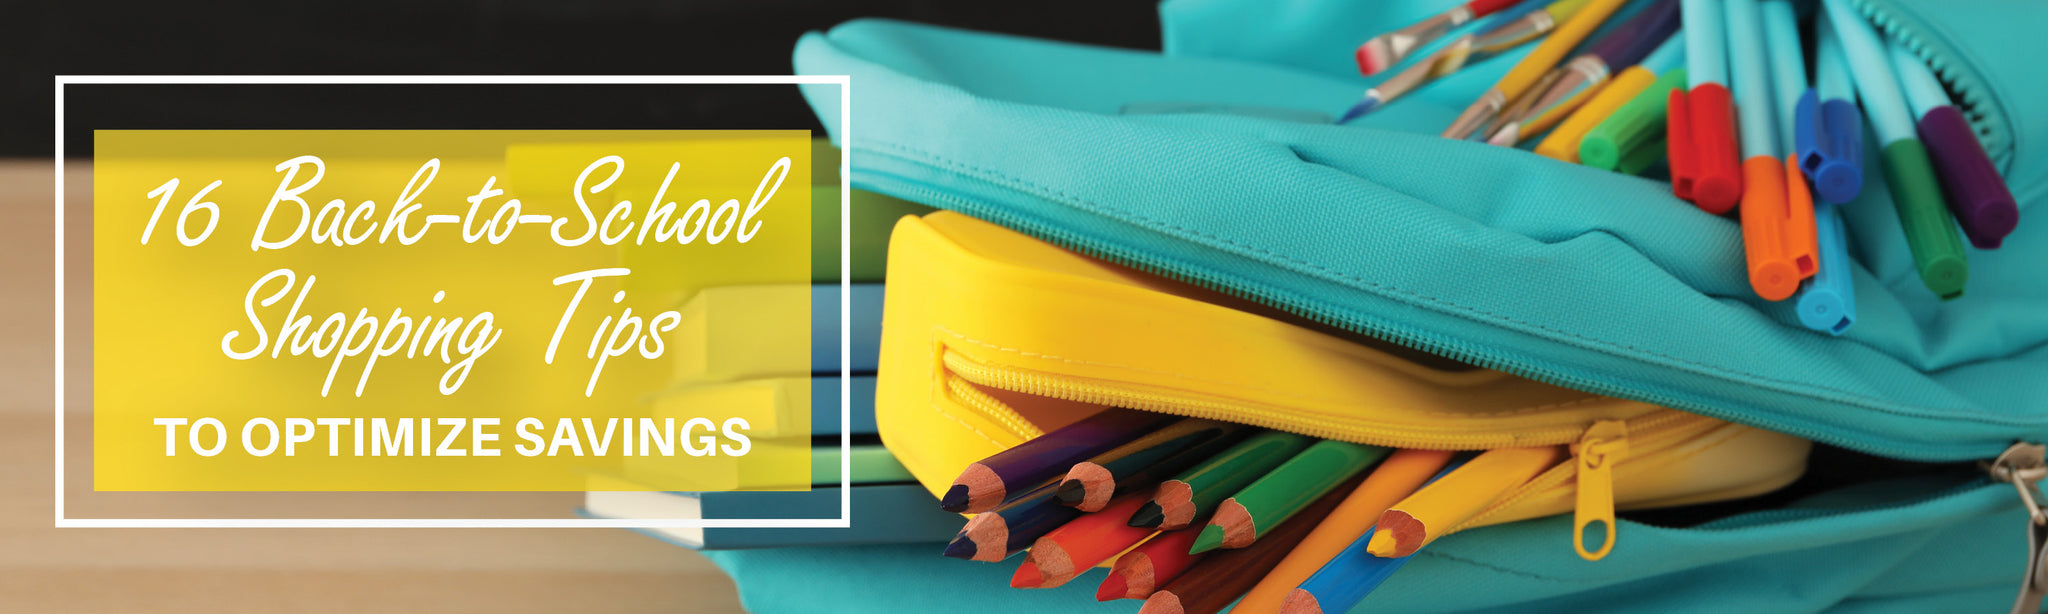 16 Back-to-School Shopping Tips to Optimize Savings